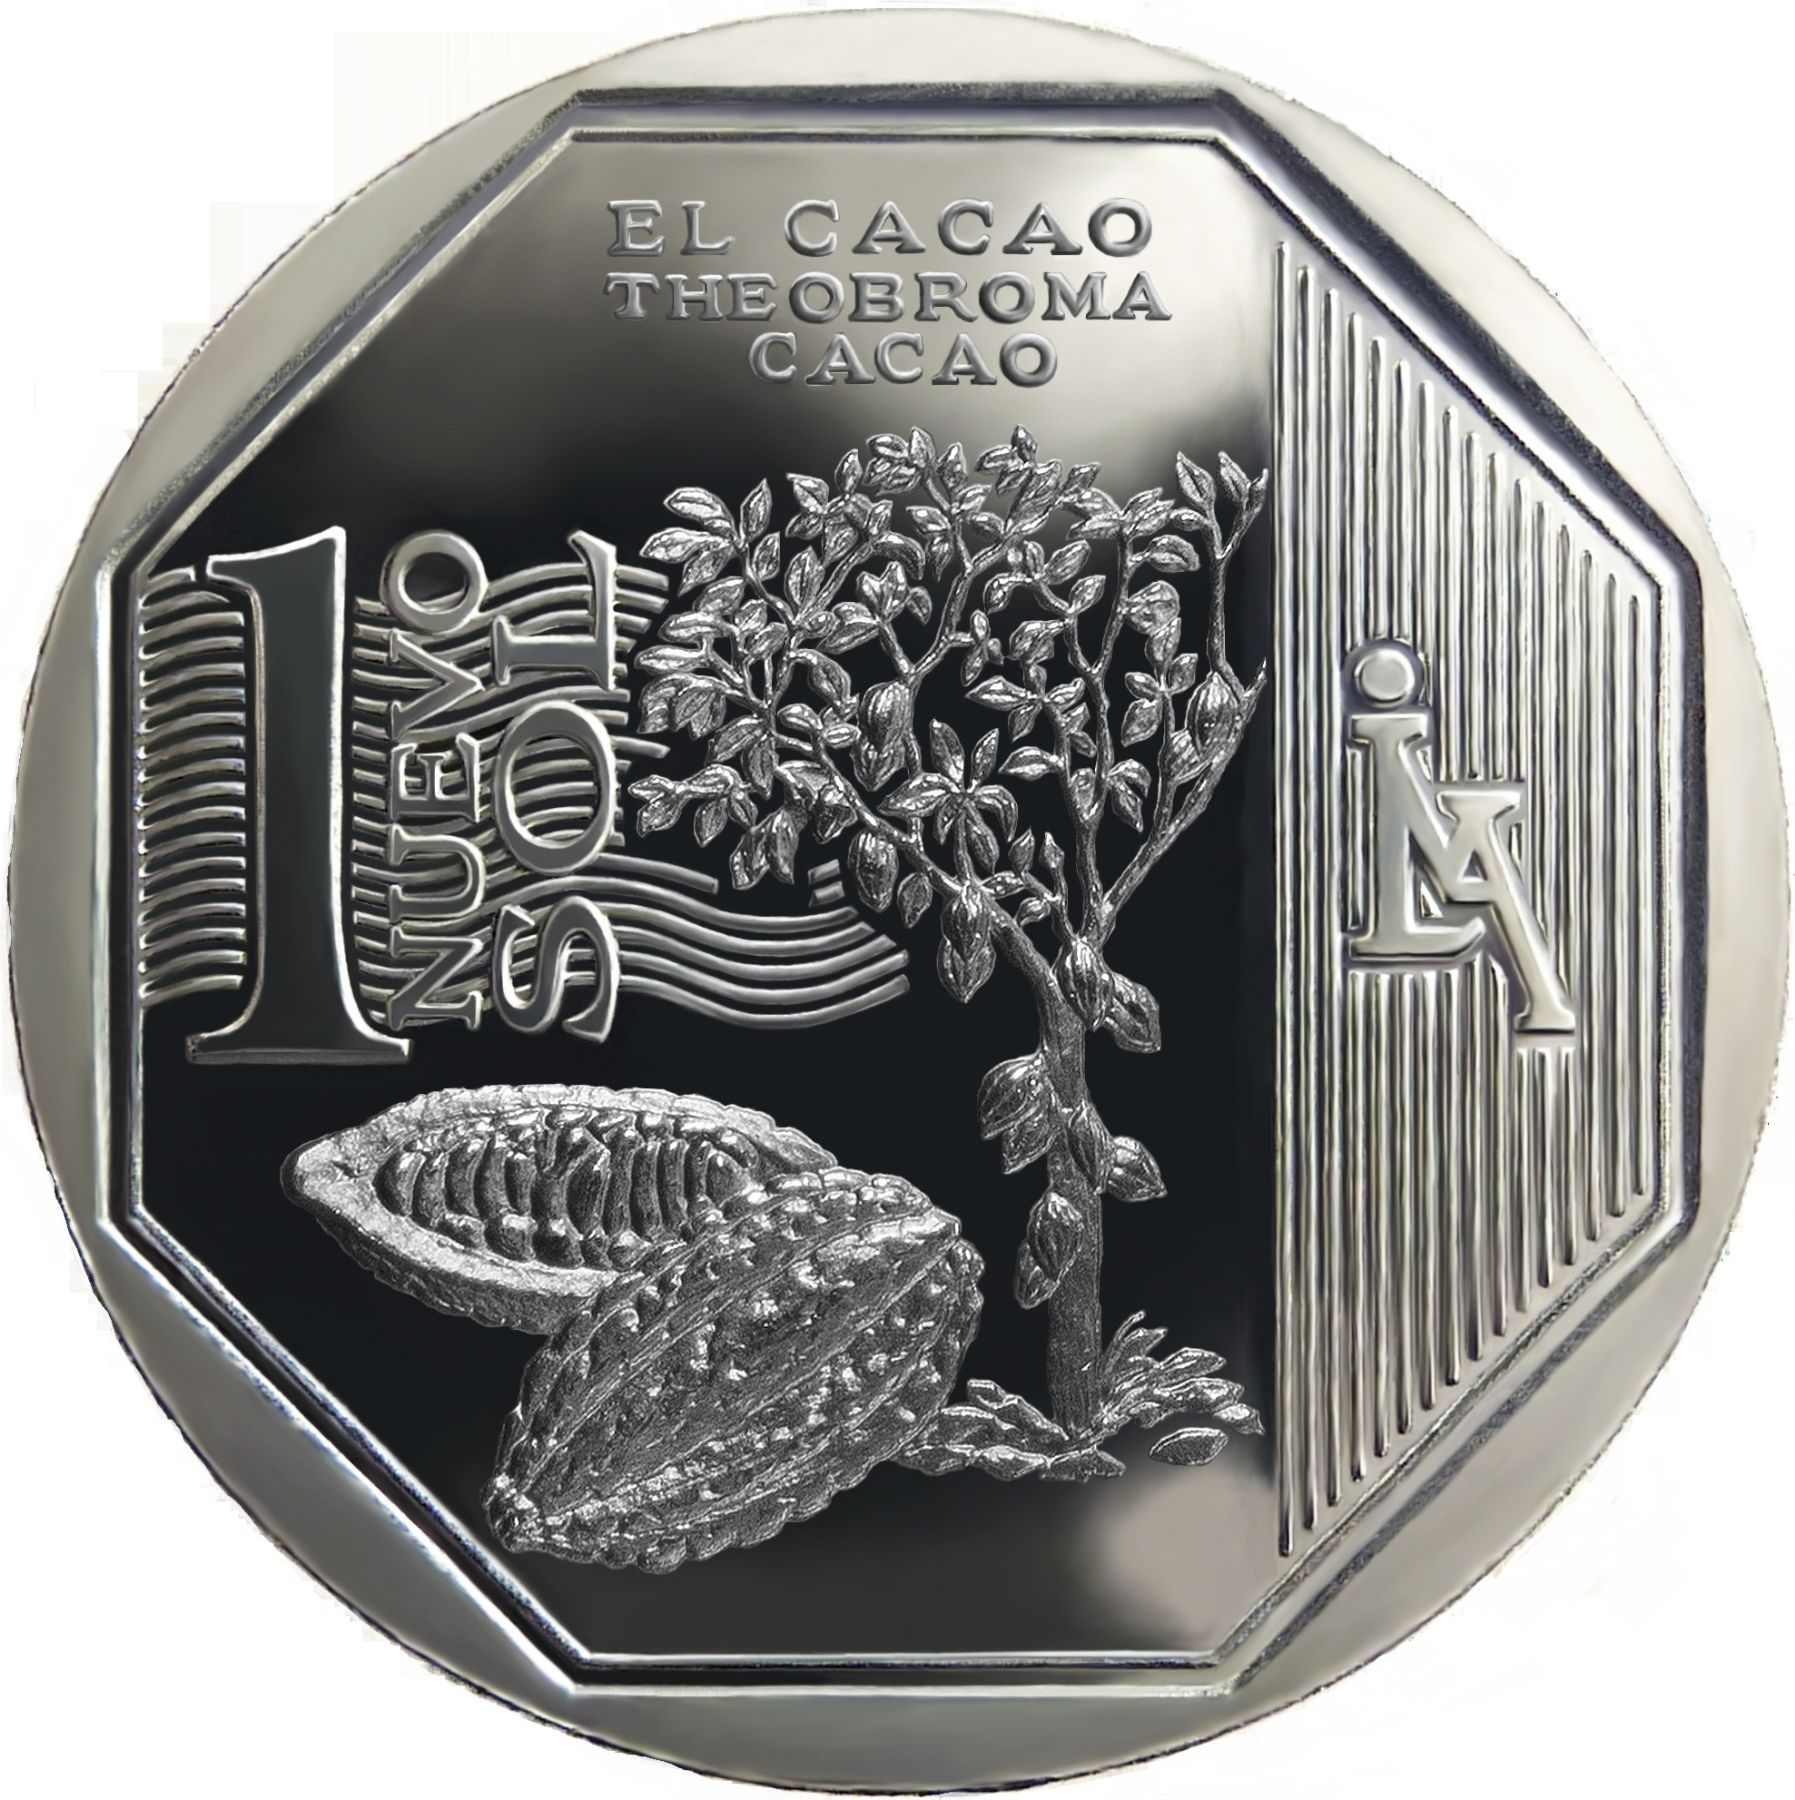 New one sol coin depicting cacao.